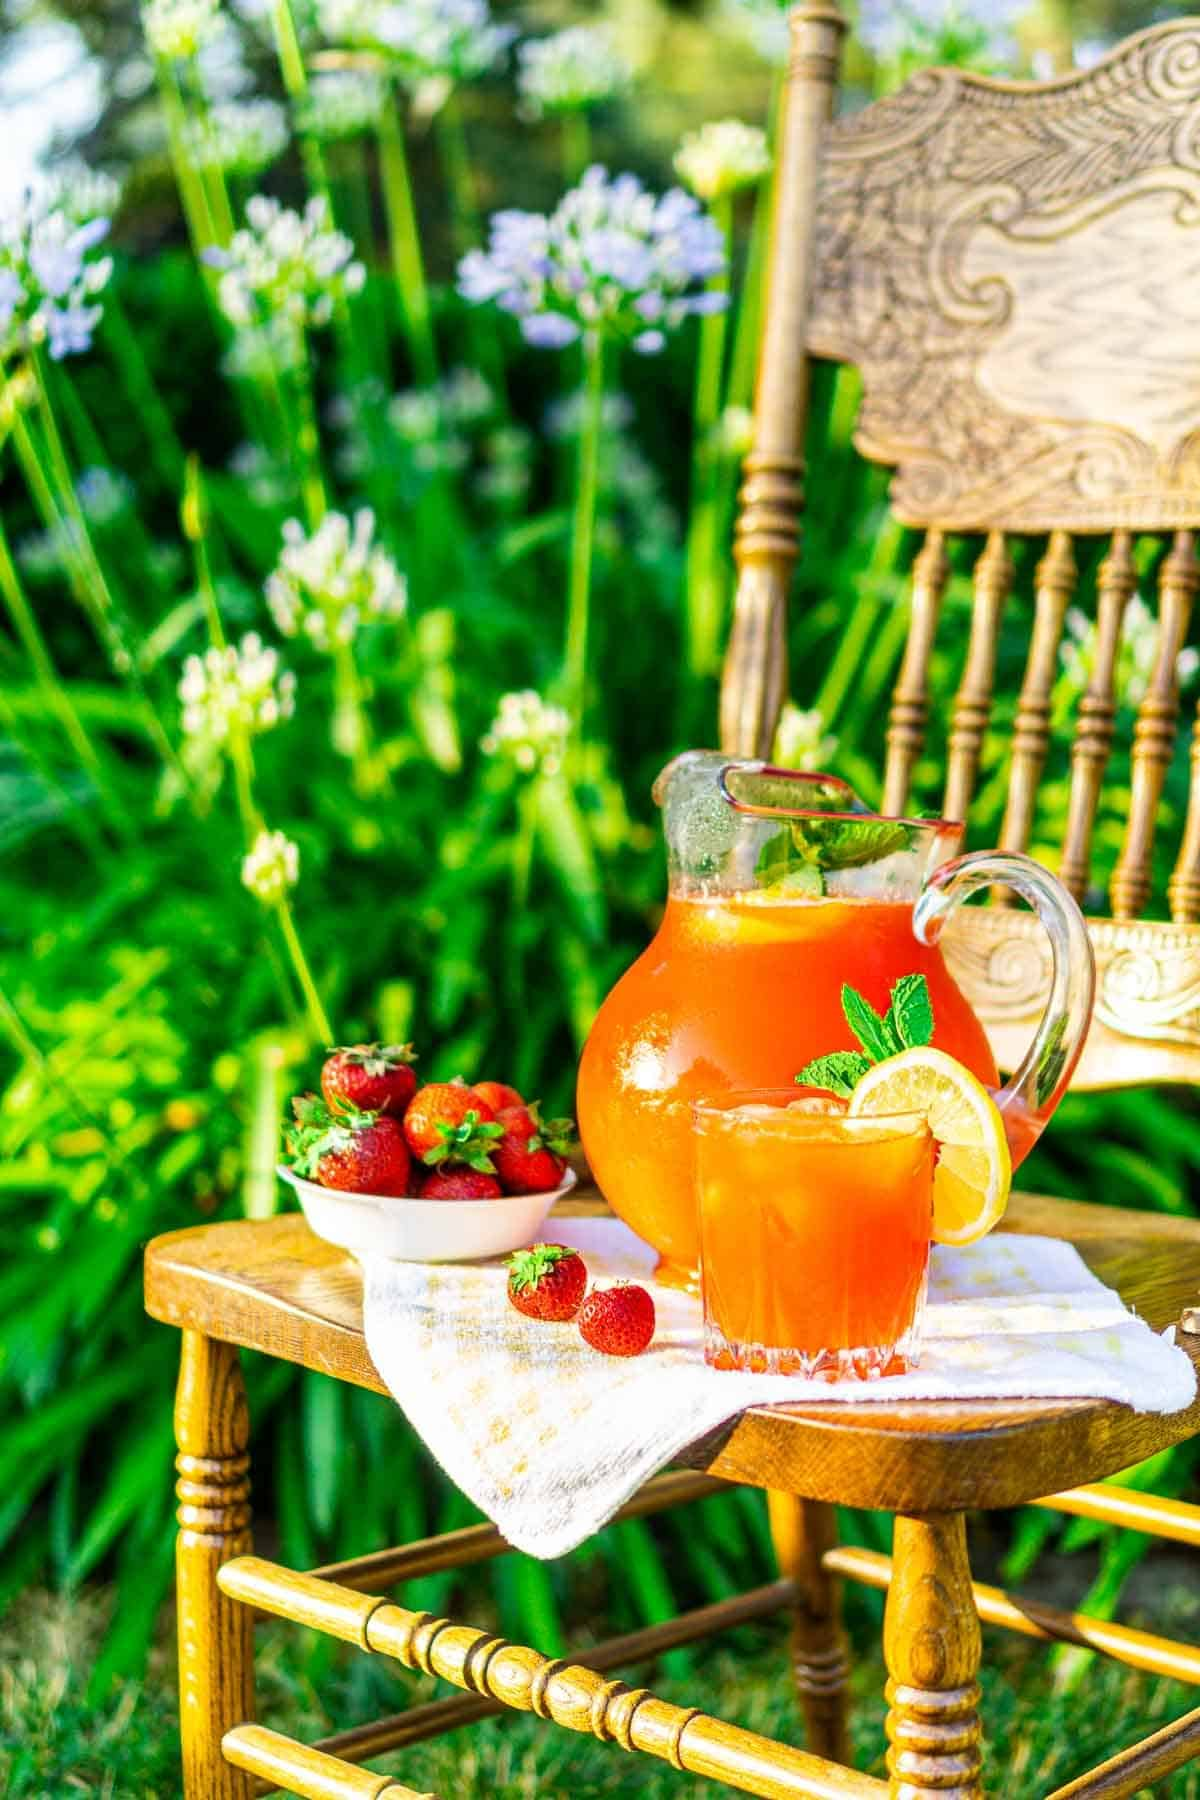 The pitcher of strawberry-mint lemonade in front of garden flowers.